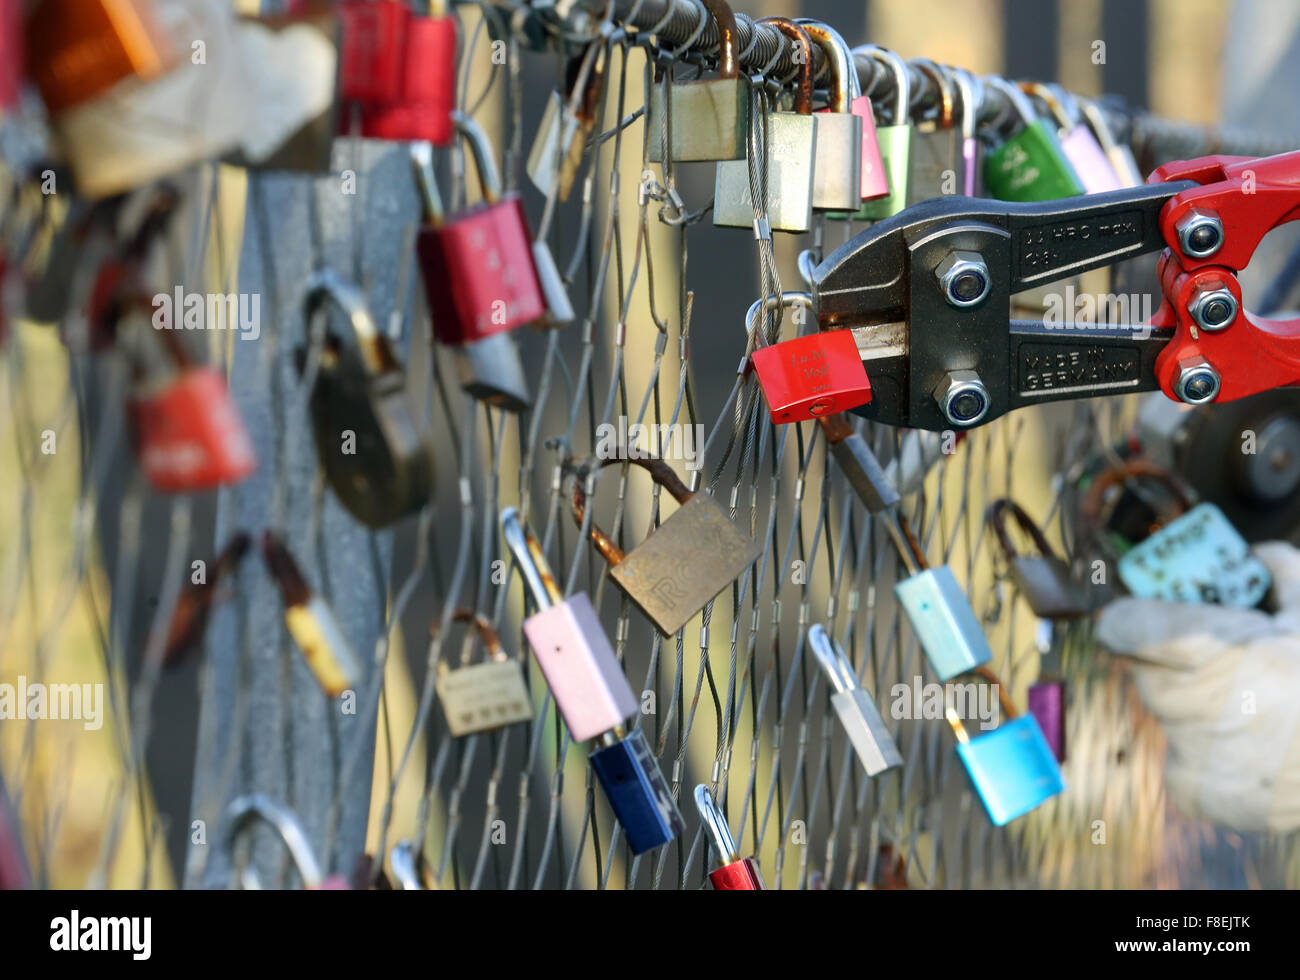 Love locks are removed from the security fence on the 'Slinky springs to fame' bridge in Oberhausen, Germany, - Stock Image